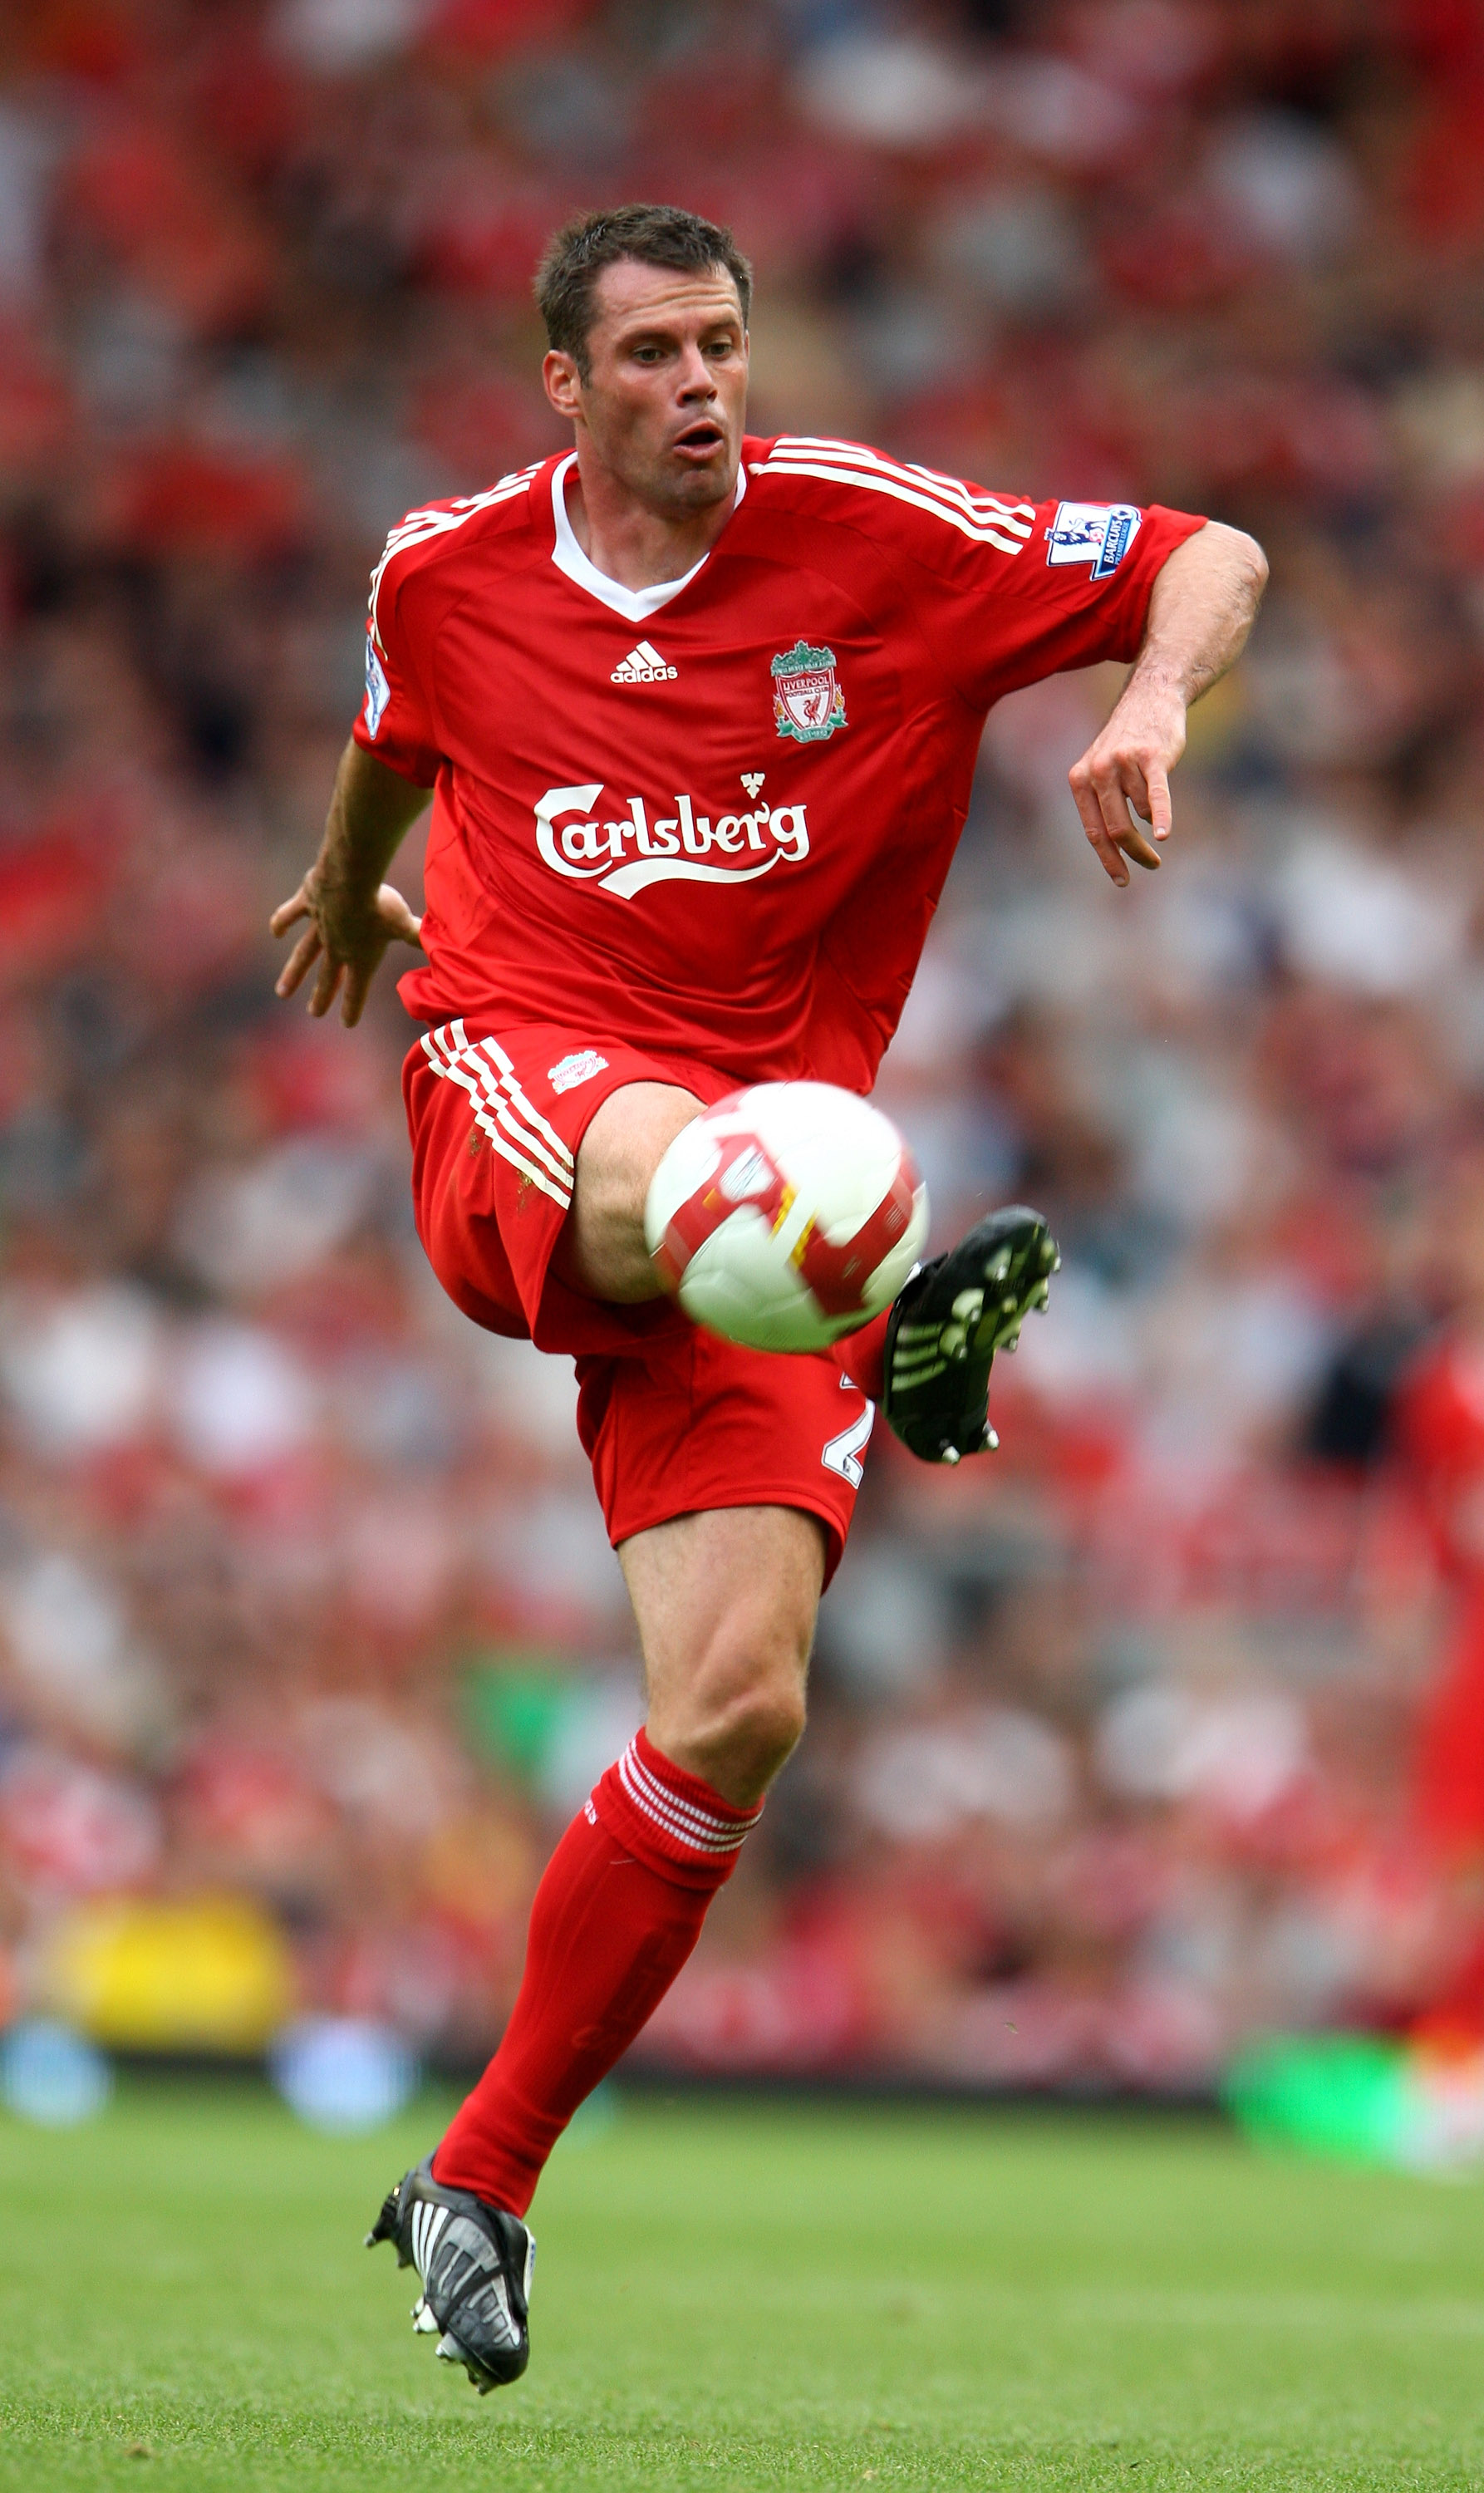 LIVERPOOL, UNITED KINGDOM - AUGUST 23:  Jamie Carragher of Liverpool during the Barclays Premier League match between Liverpool and Middlesbrough at Anfield on August 23, 2008 in Liverpool, England  (Photo by Phil Cole/Getty Images)